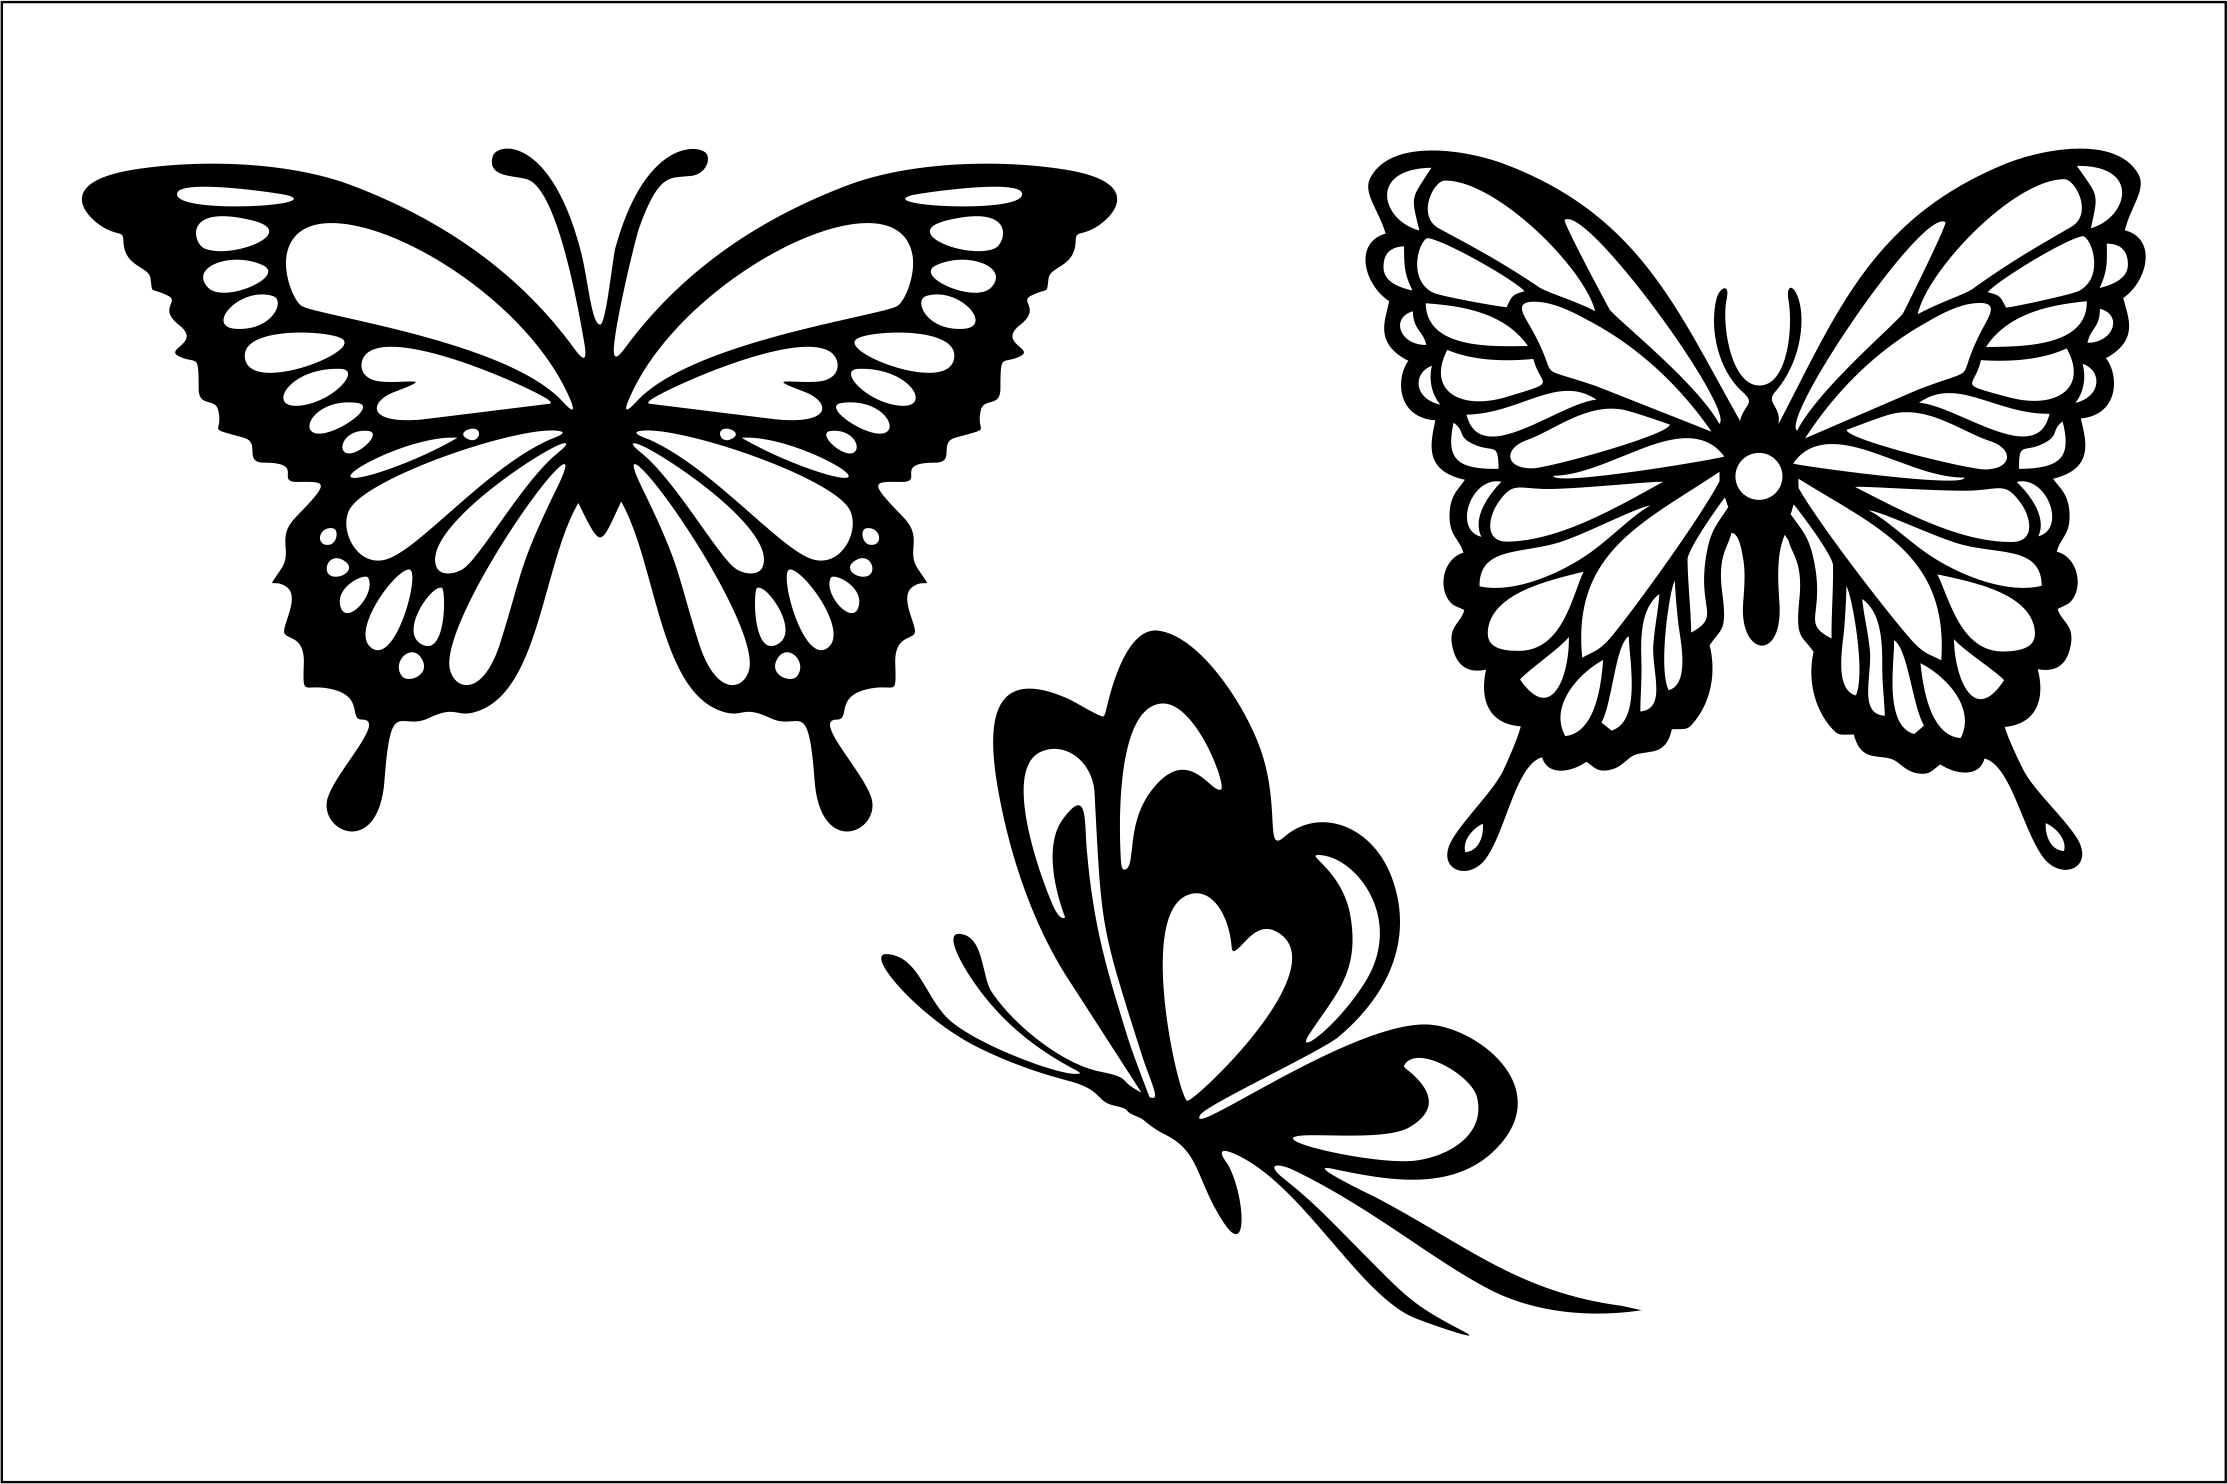 Download Free Butterflies Cut File Graphic By Fast Store Creative Fabrica for Cricut Explore, Silhouette and other cutting machines.